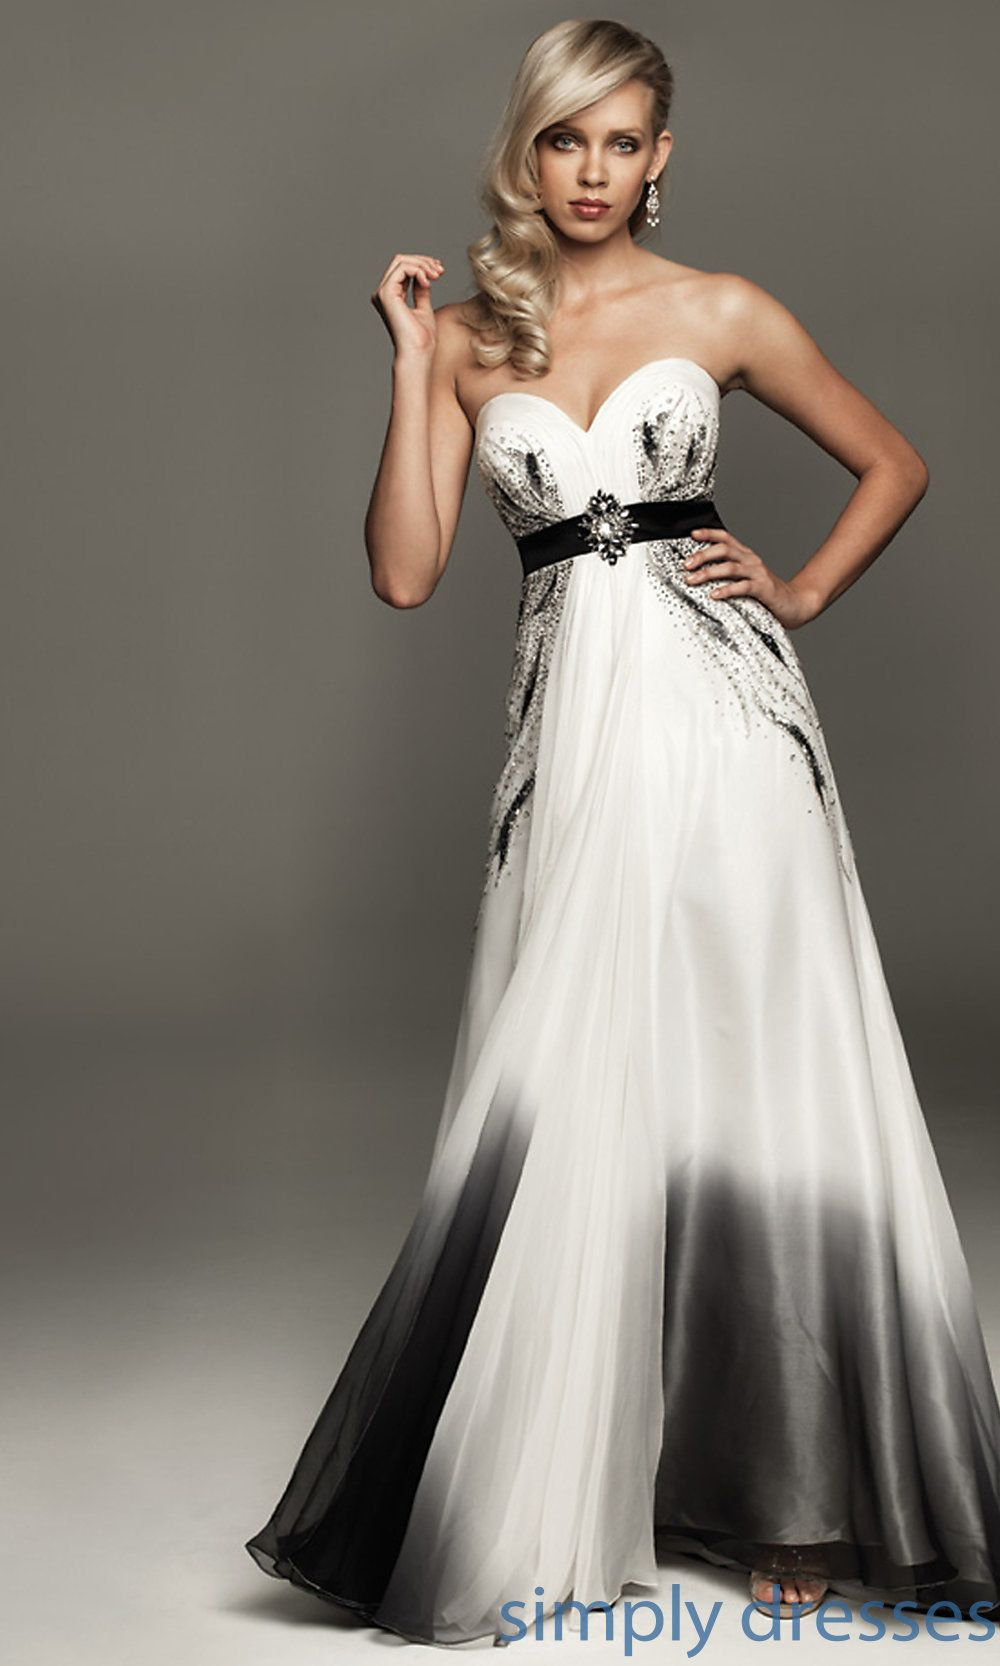 NM-A403 - Madison James Floor-Length Black-and-White Gown | Prom ...